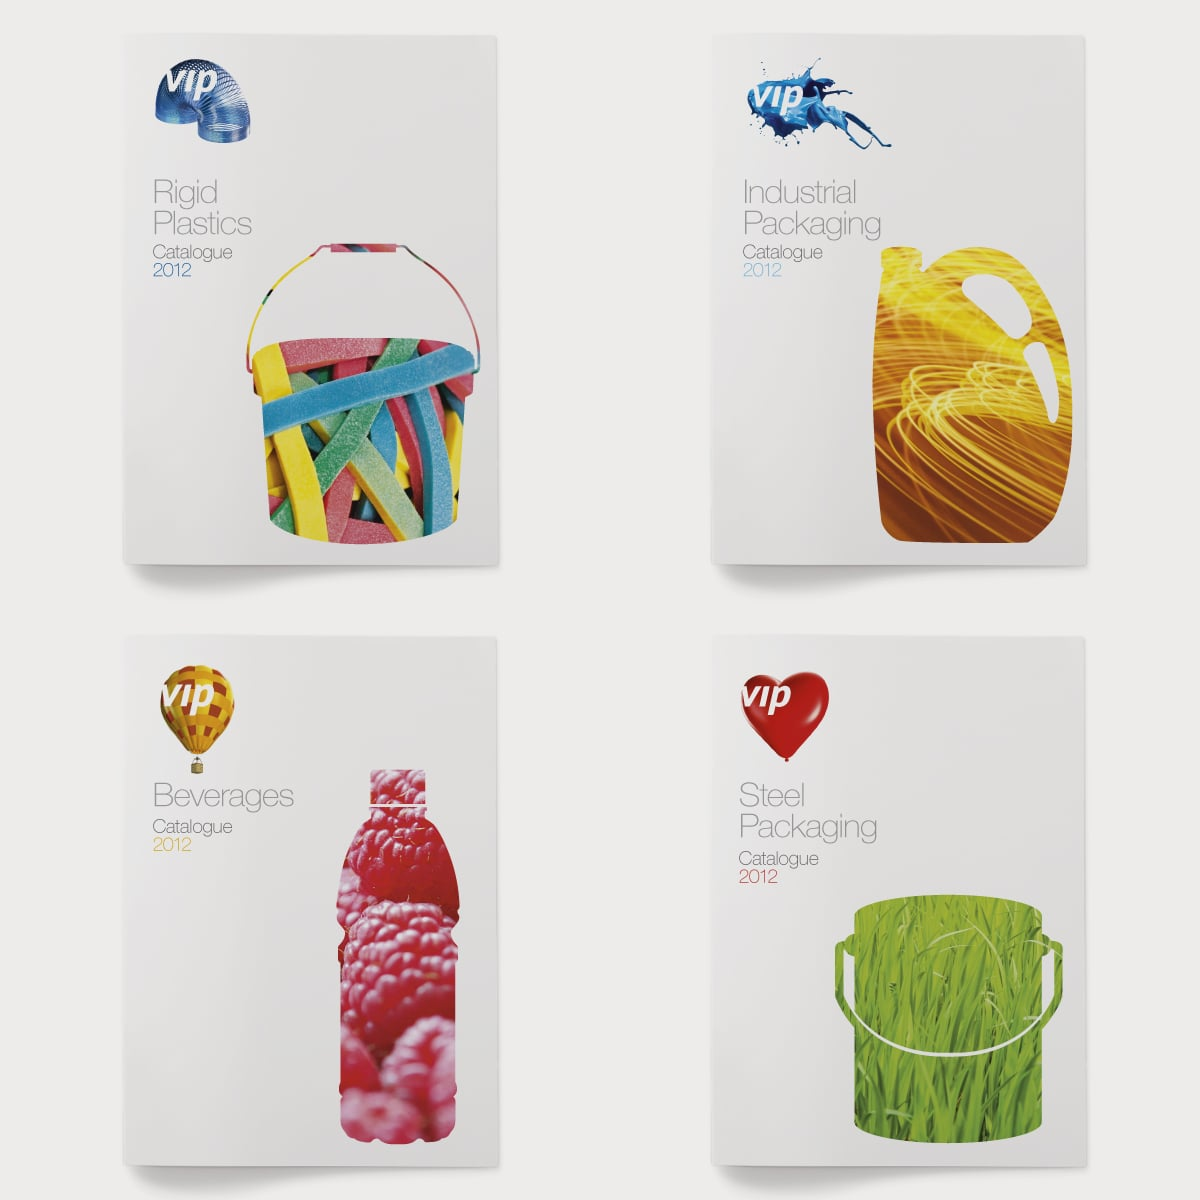 Davidson Branding VIP Packaging Corporate Brand Identity Logo Design Product Catalogue